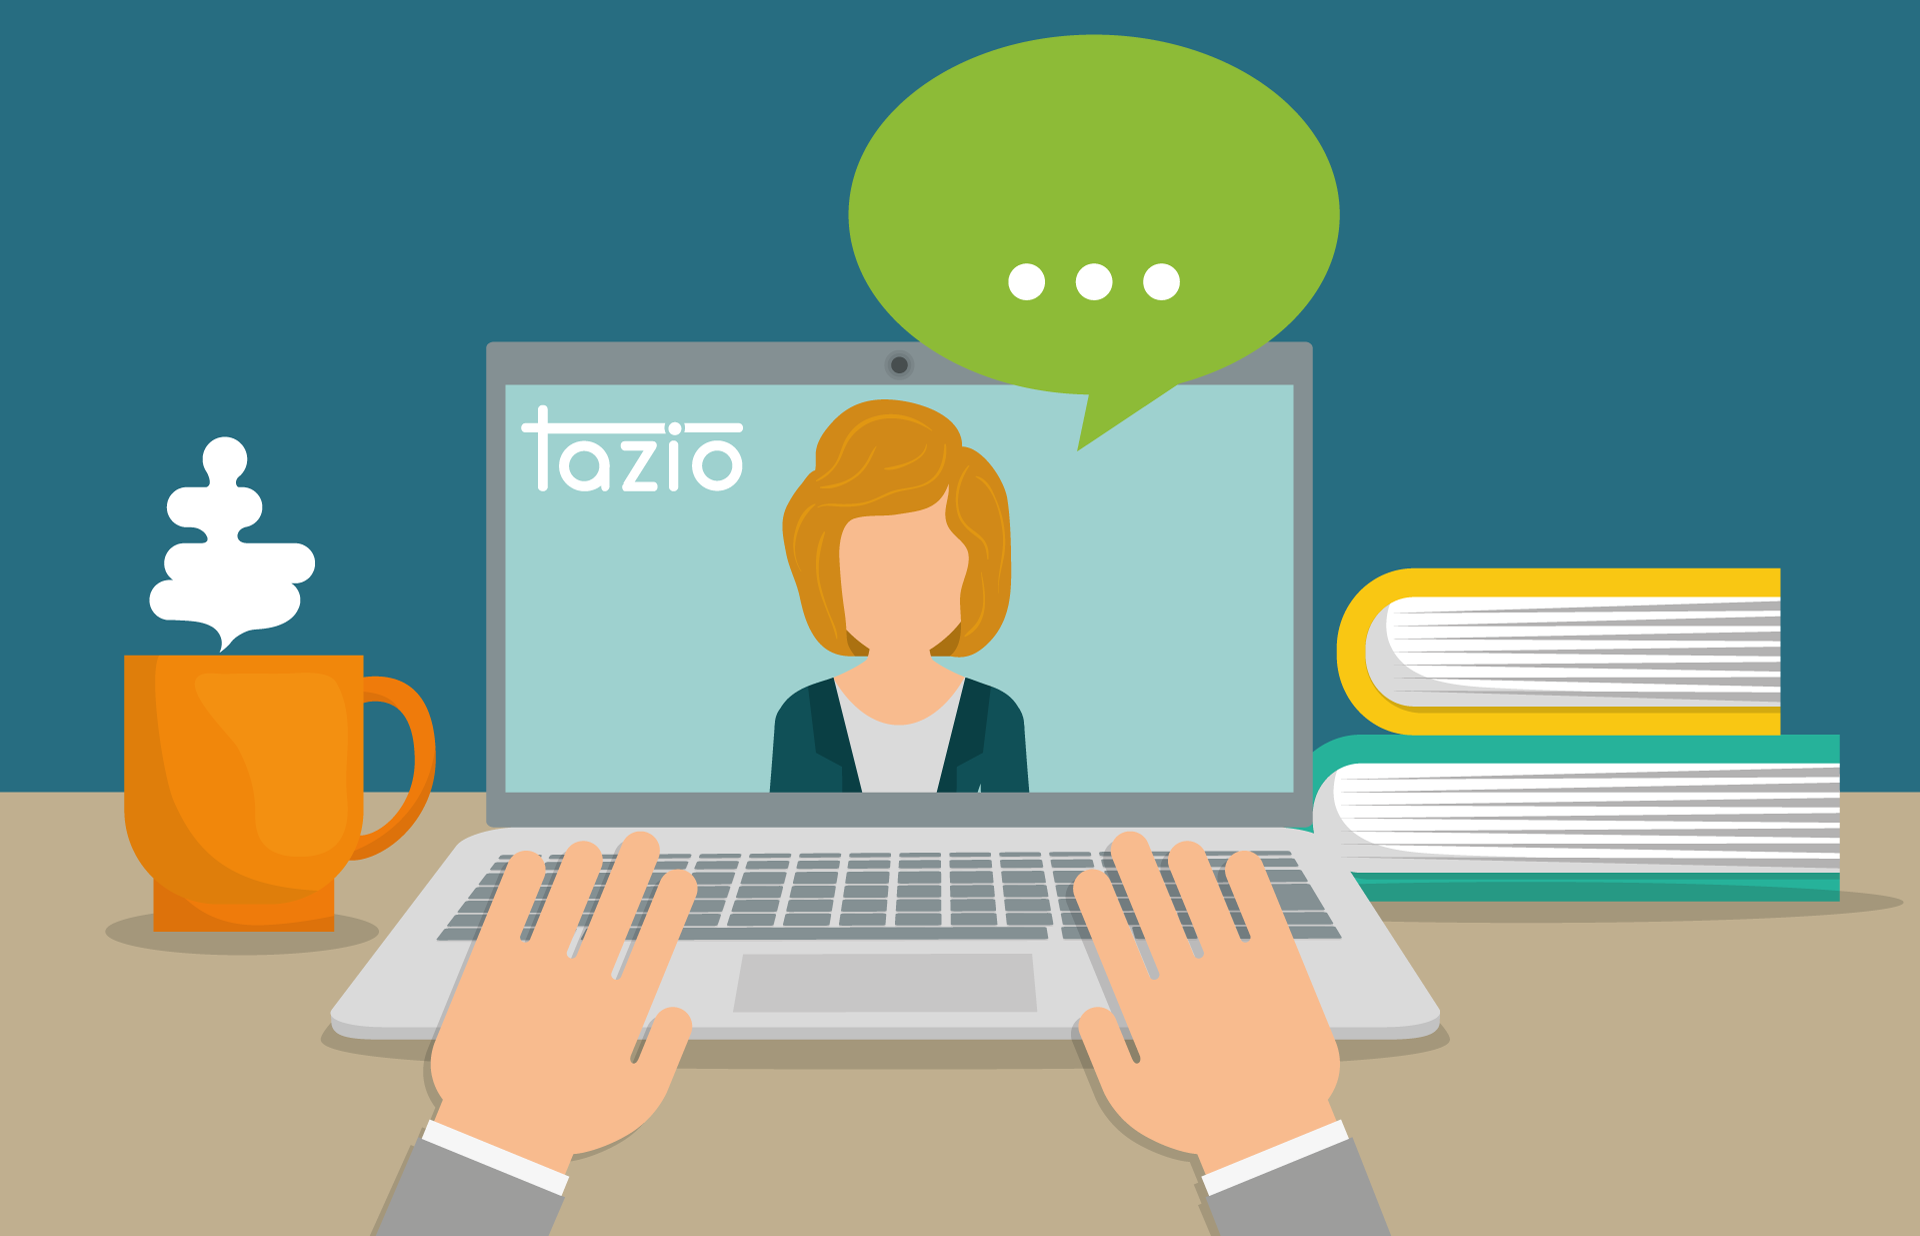 tazio resources 7 top tips to improve your recruitment process include a video interview